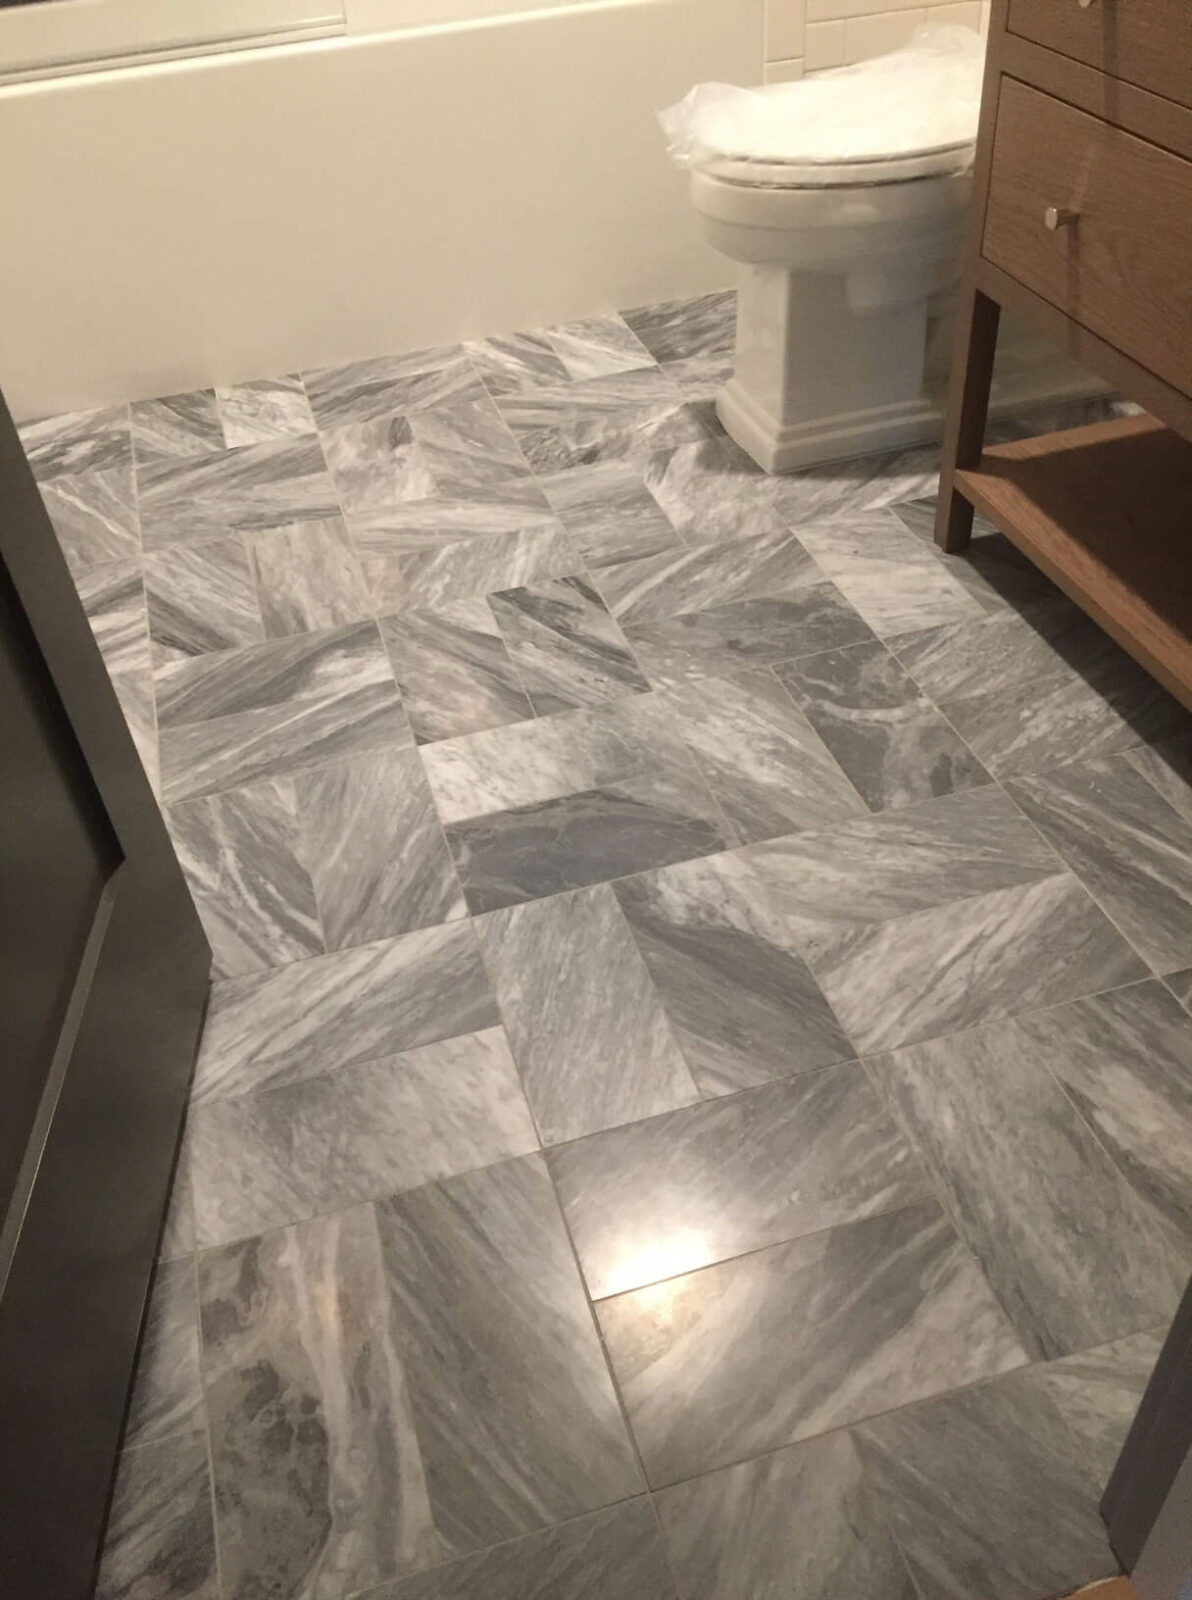 Tile flooring in the bathroom